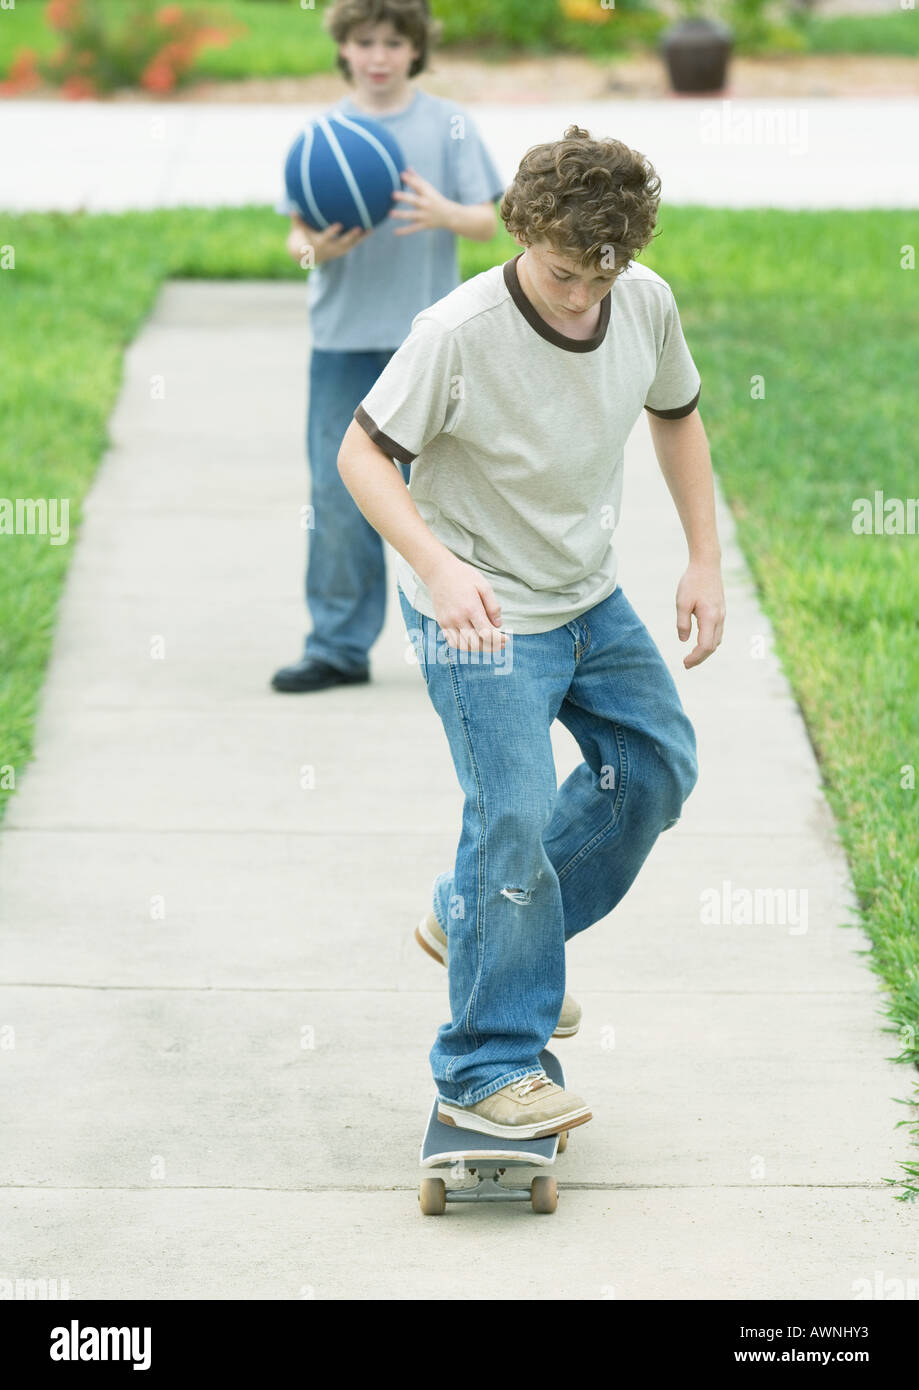 Boy skating on suburban sidewalk - Stock Image